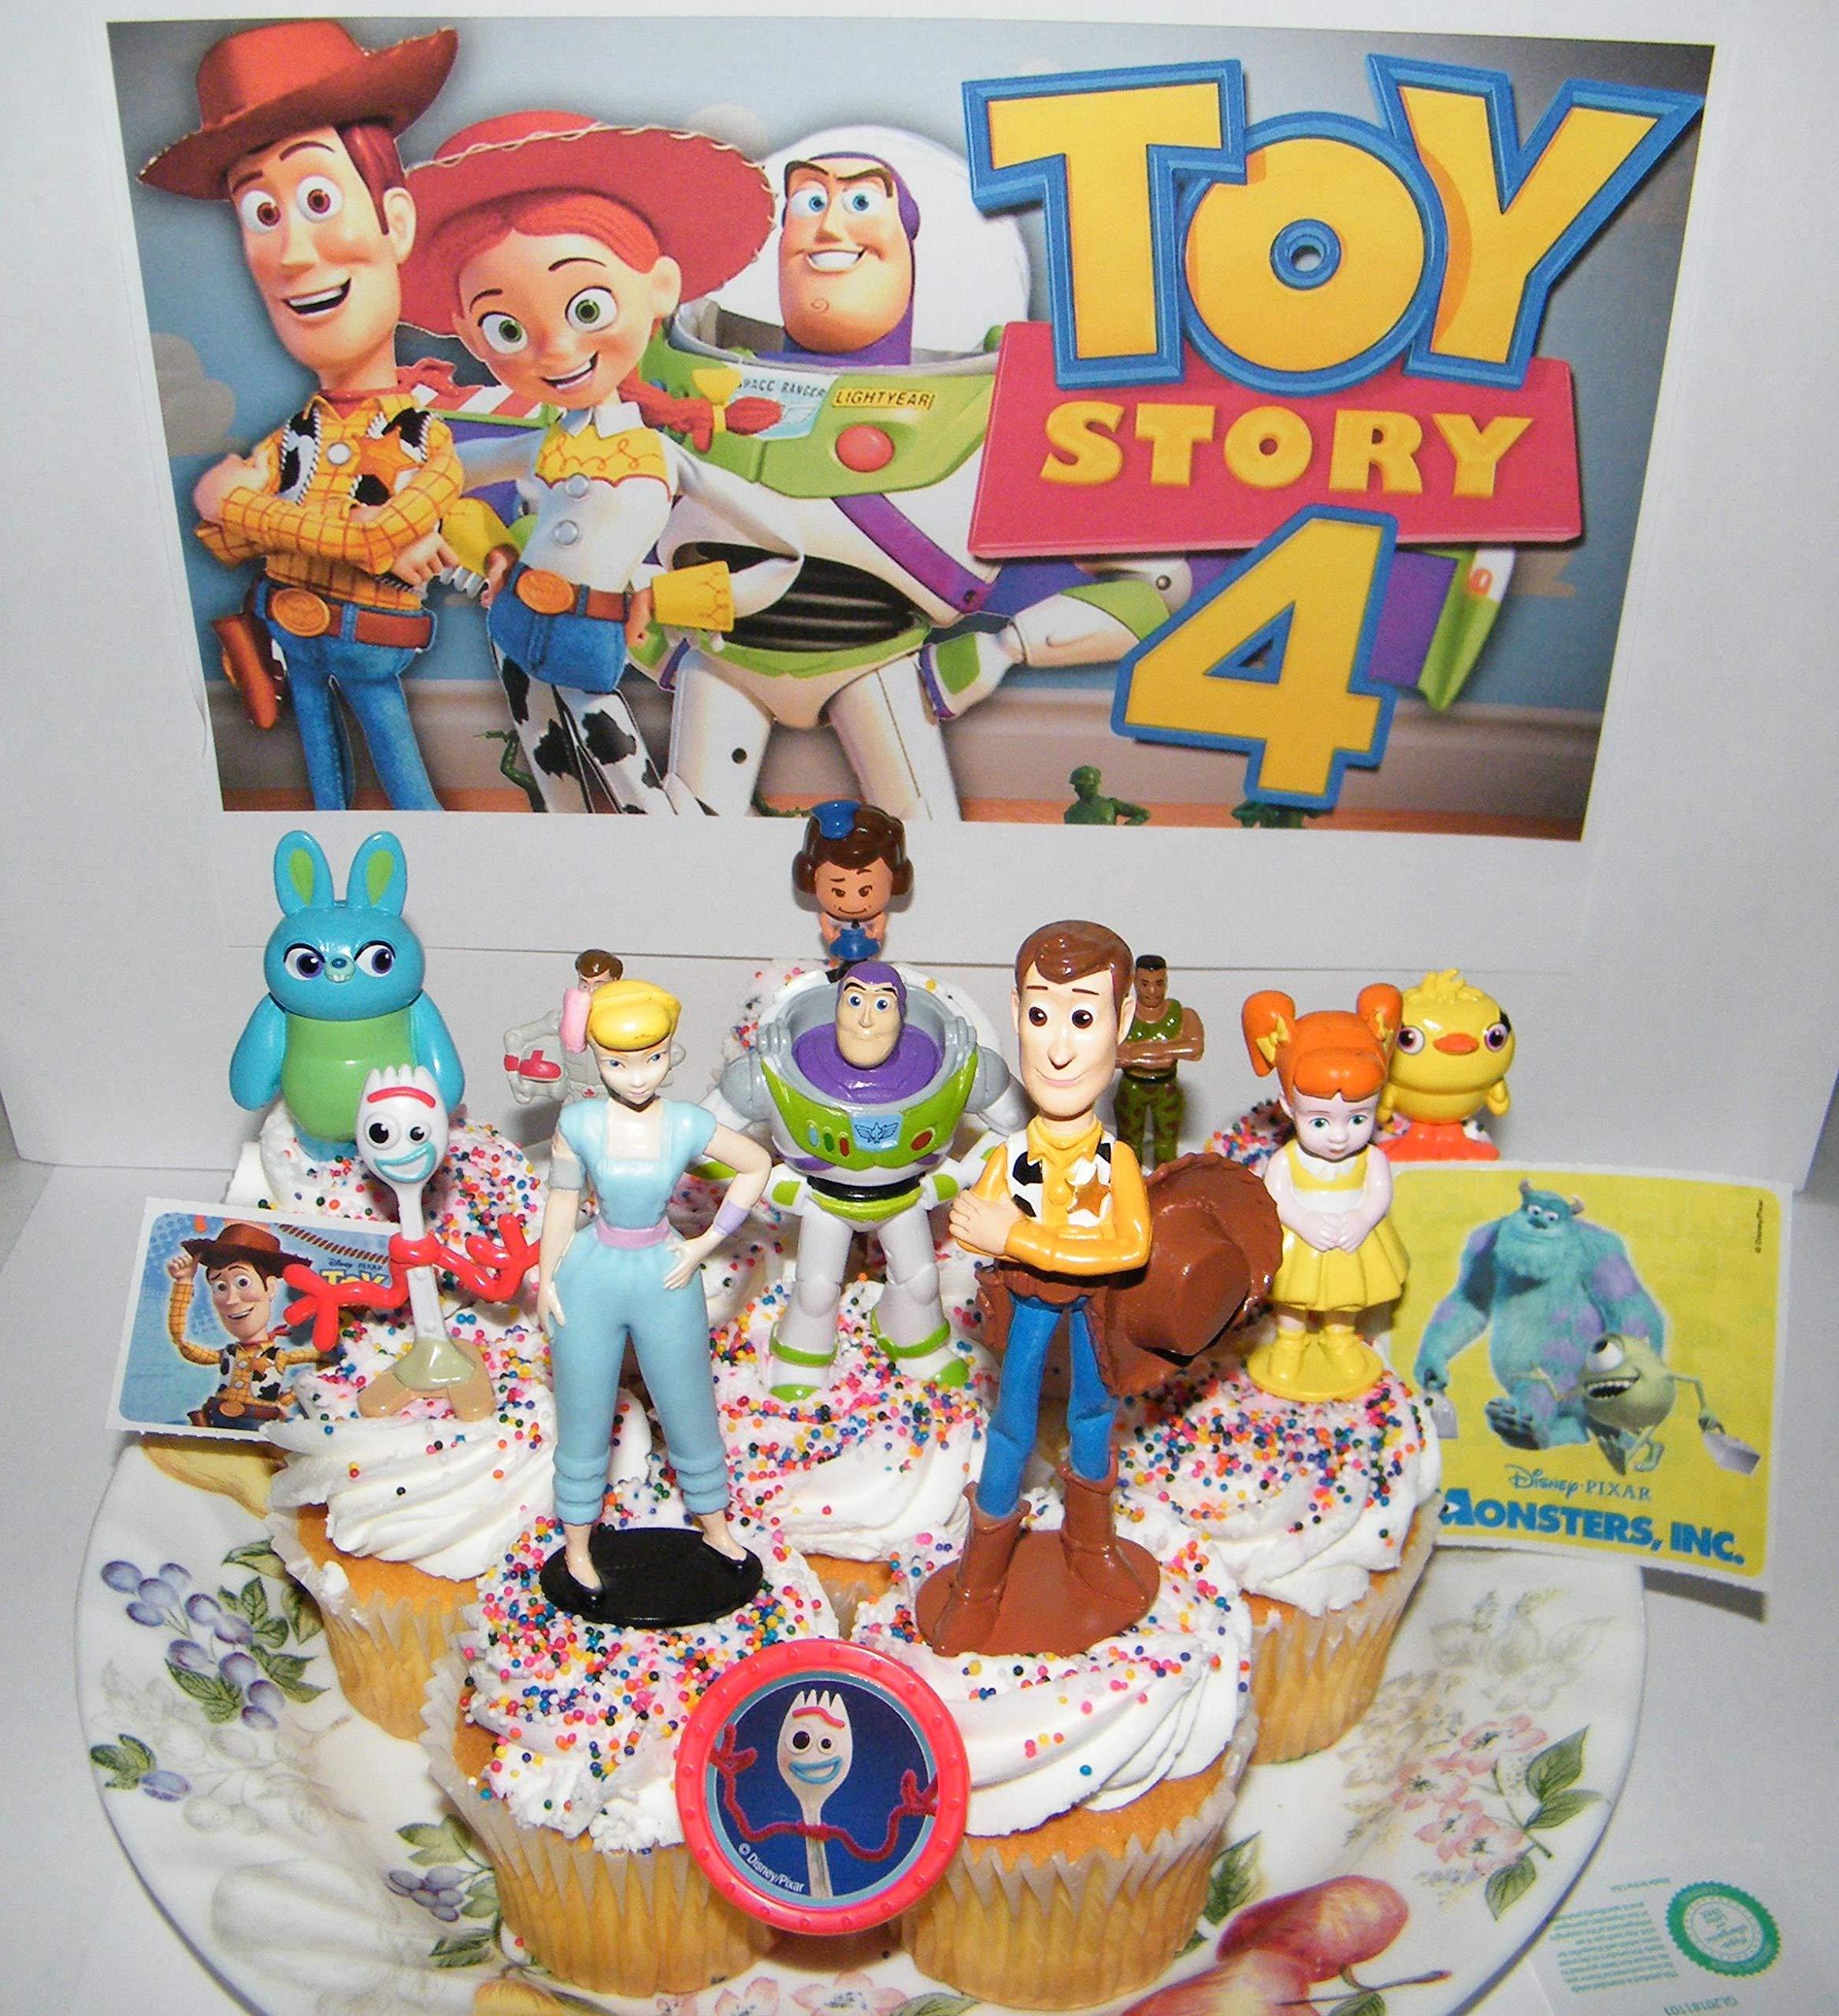 Toy Story 4 Movie Deluxe Cake Toppers Cupcake Decorations 13 Set with 10 Figures, Movie Stickers and TSRing Featuring Woody, Buzz and All new characters like Forky! by Party Fun